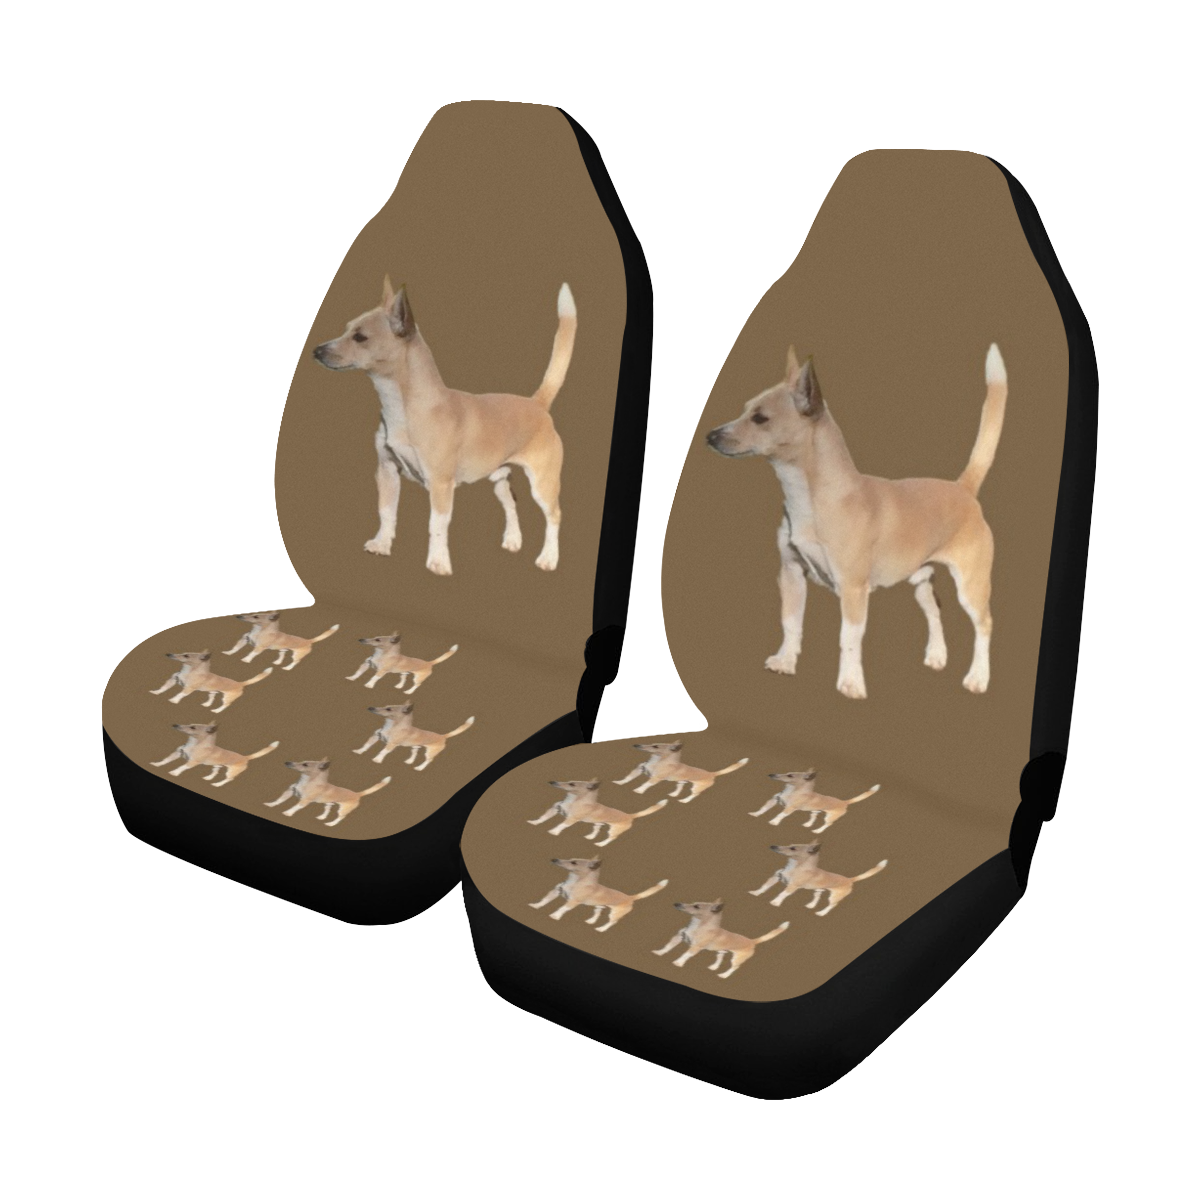 Portuguese Podengo Car Seat Covers (Set of 2)